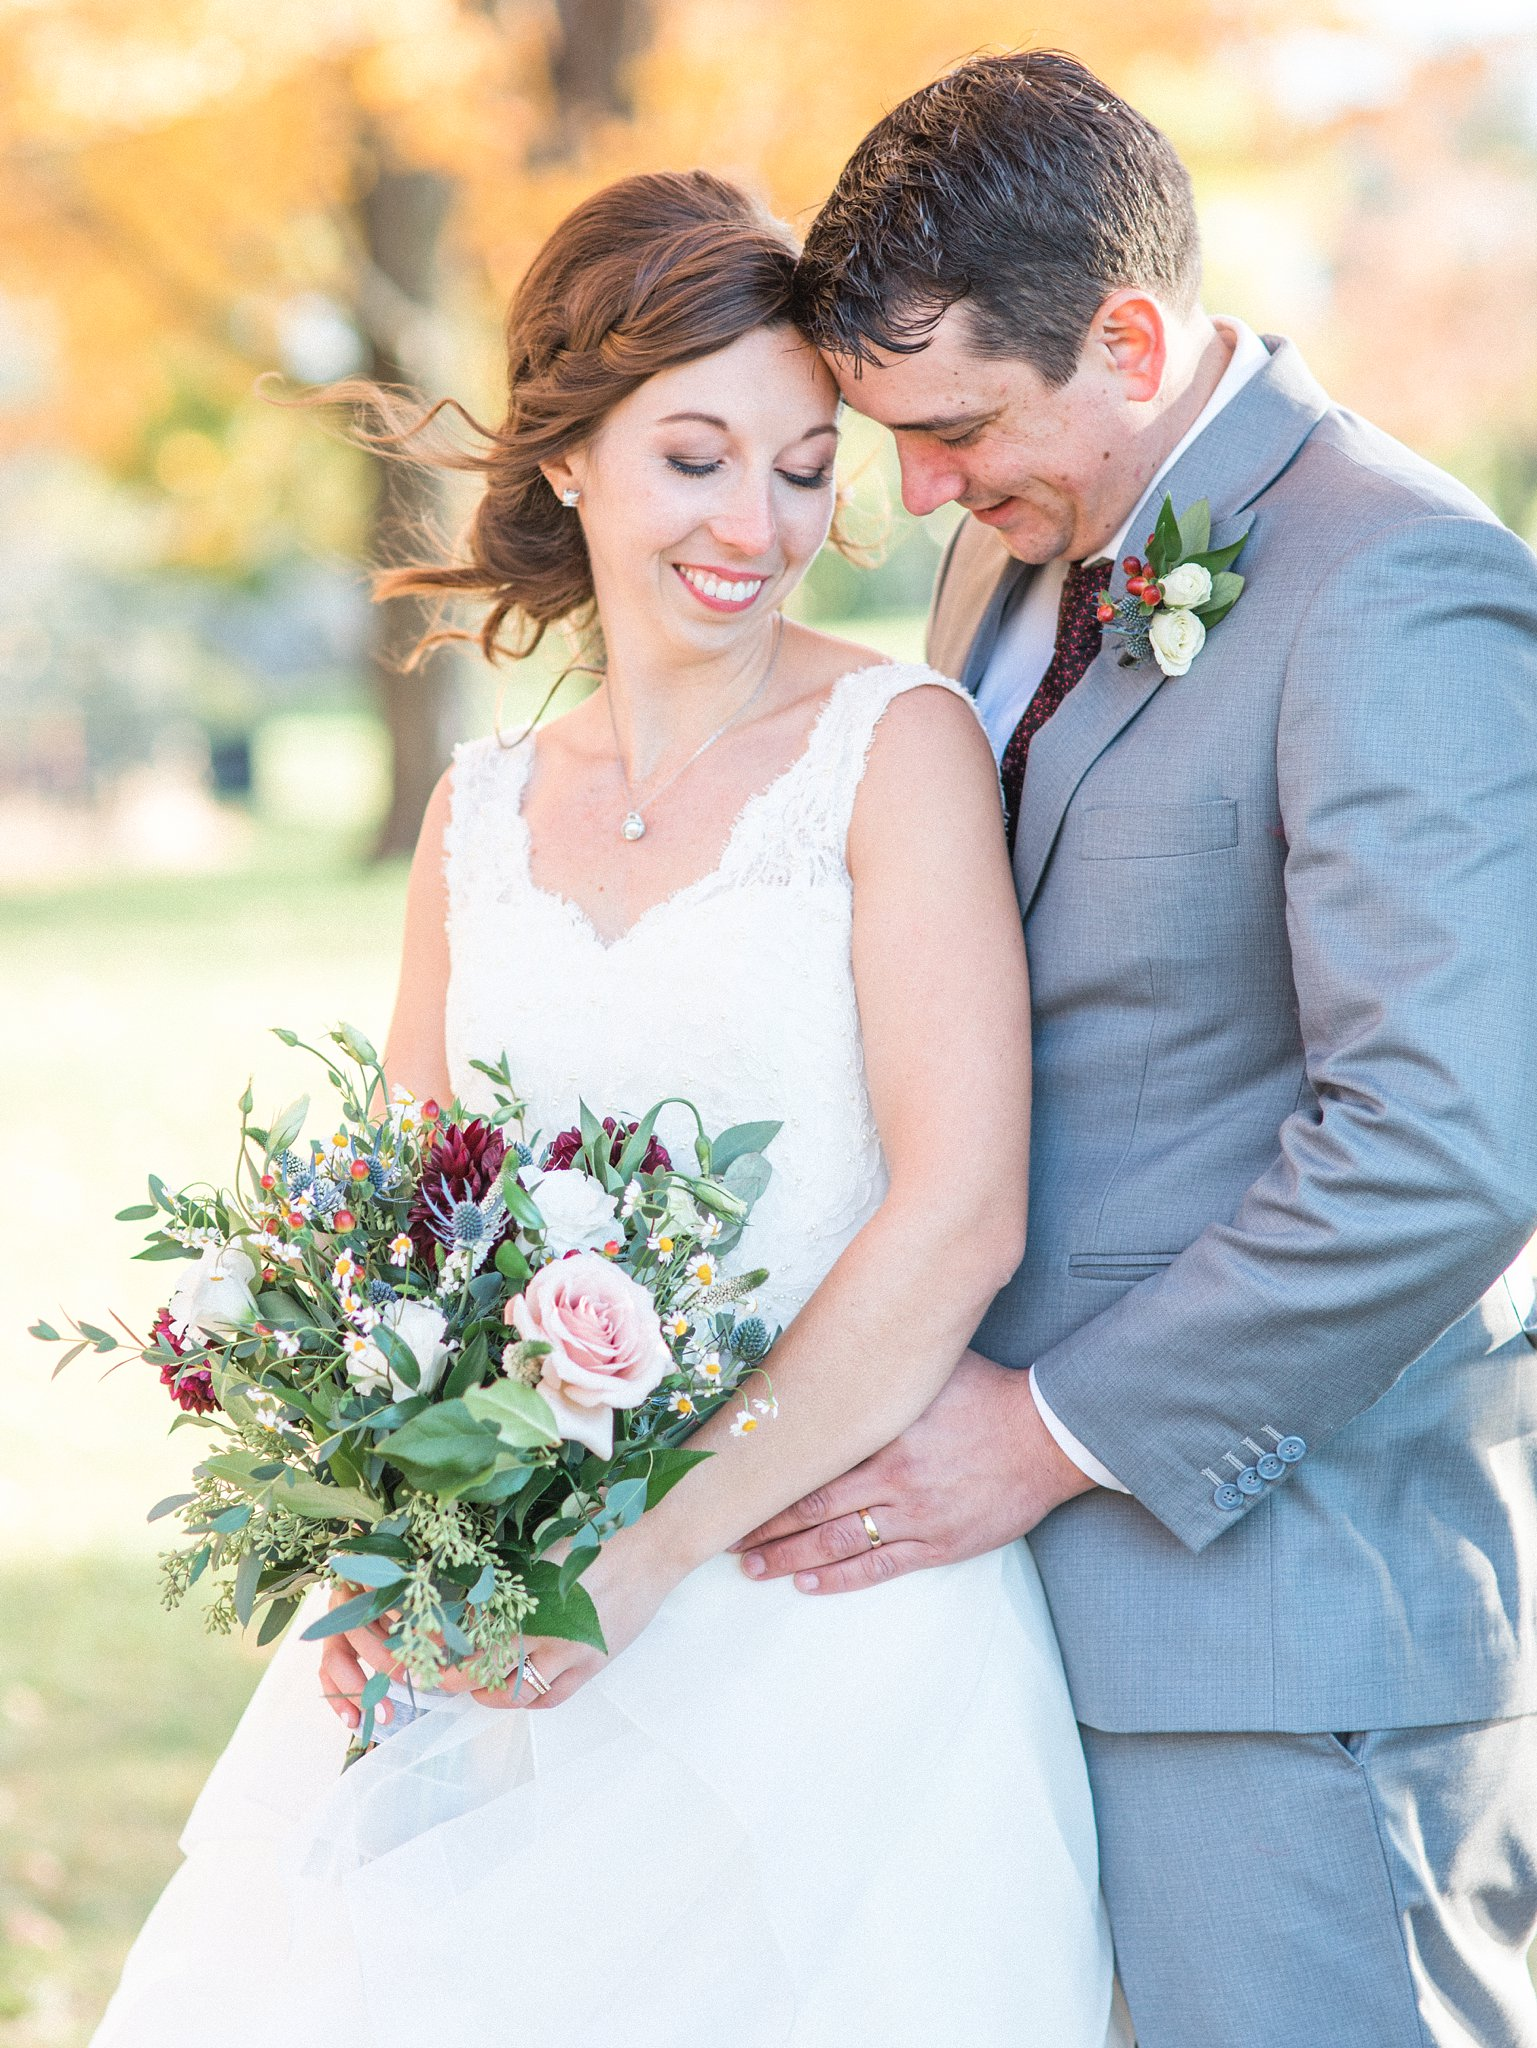 Bride and groom photos at Mooney's Bay, Hilton Garden Inn Ottawa Airport Hotel Wedding